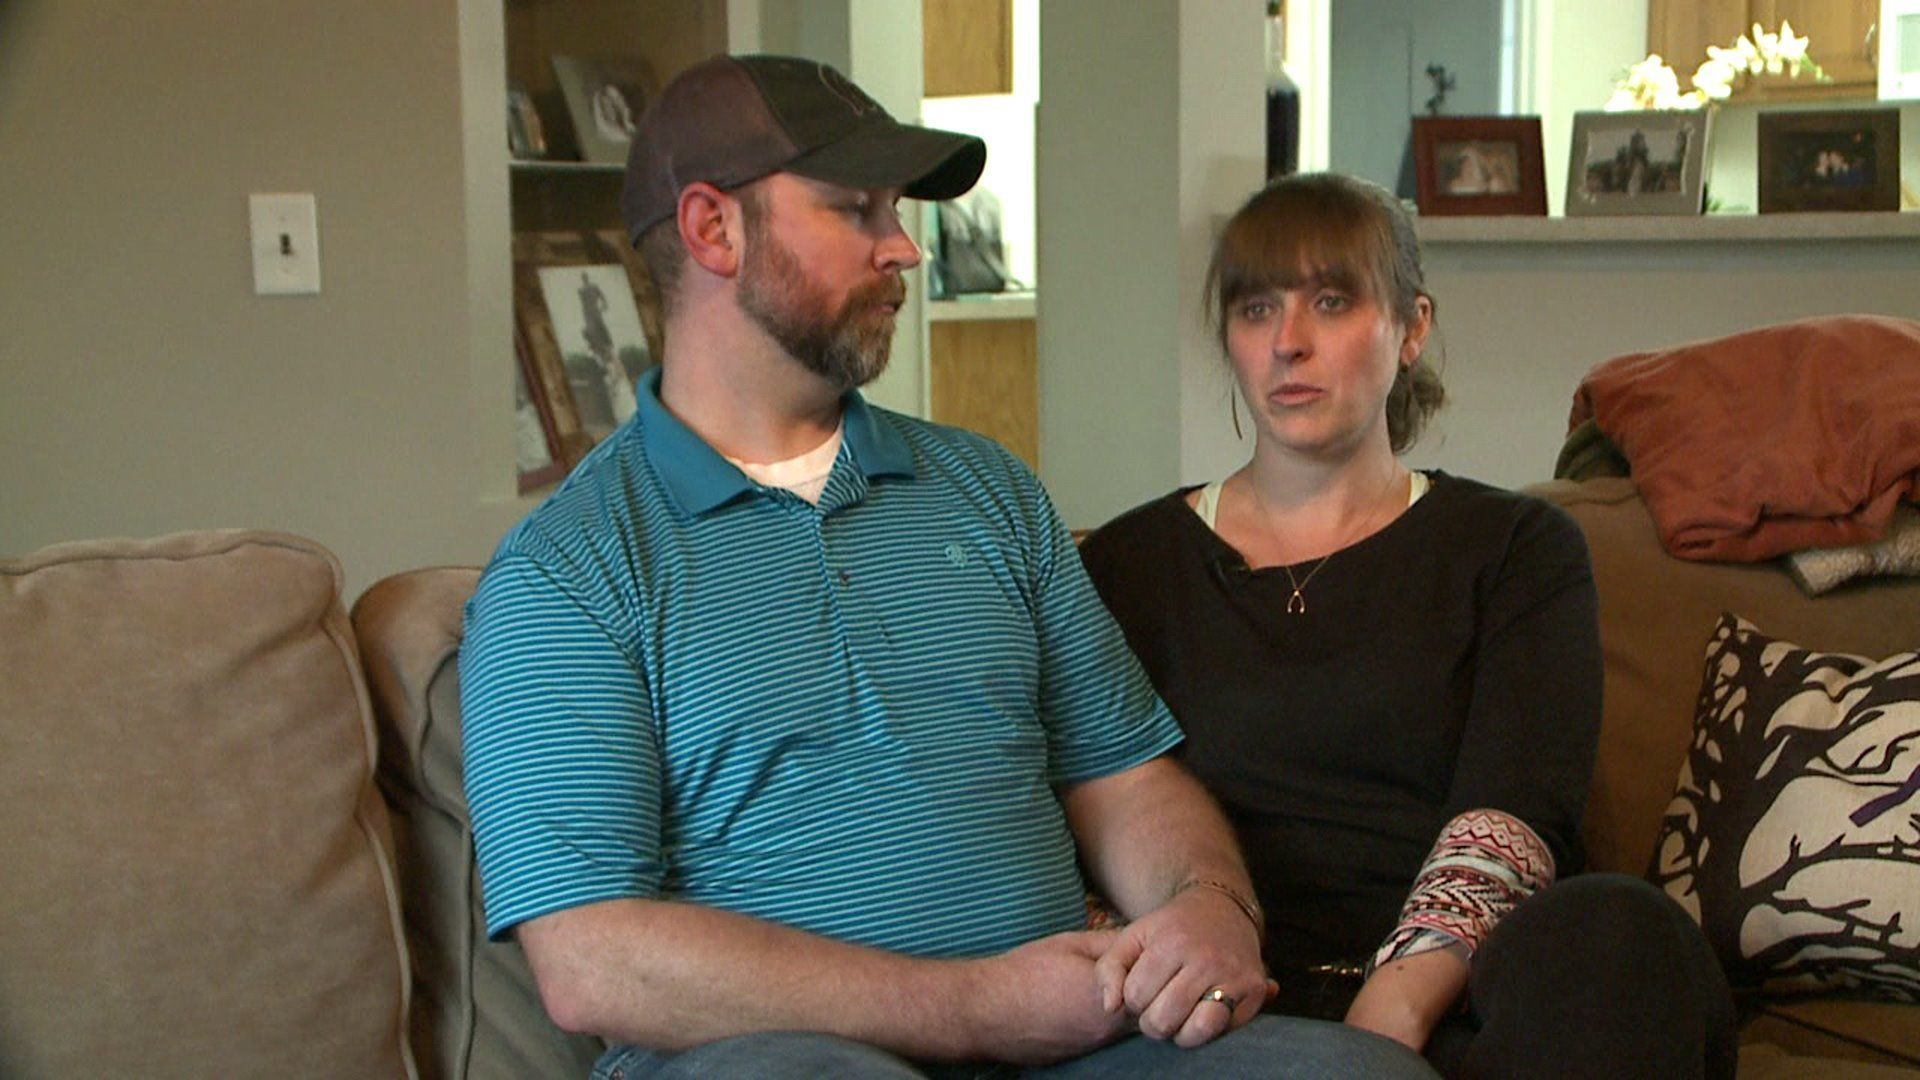 A Meijer pharmacist is under scrutiny after a woman says he denied her a prescription she needed after suffering a miscarriage.